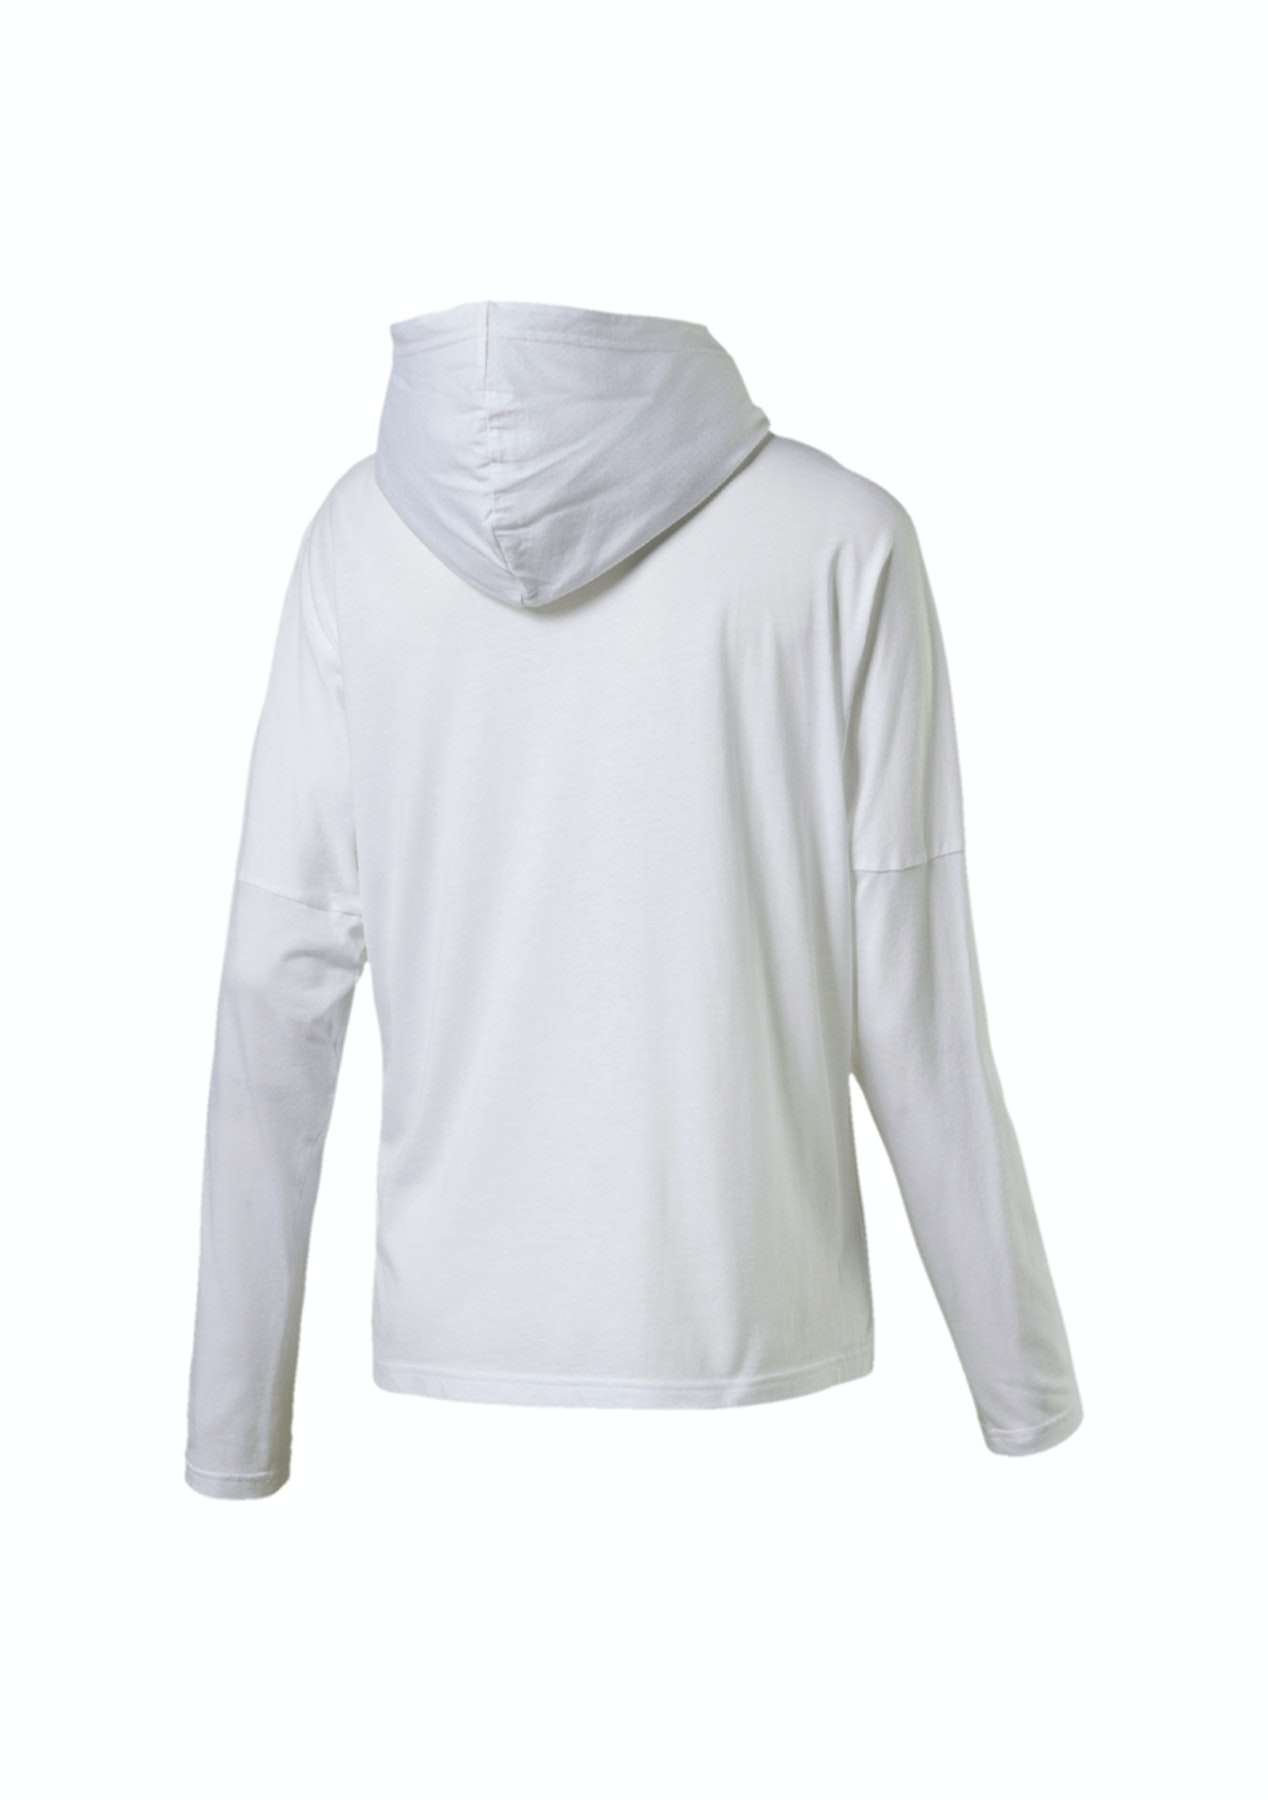 794bac1ca3f8 Puma Womens - Urban Sports Light Cover Up White - Up to 63% Off PUMA Womens  - Onceit